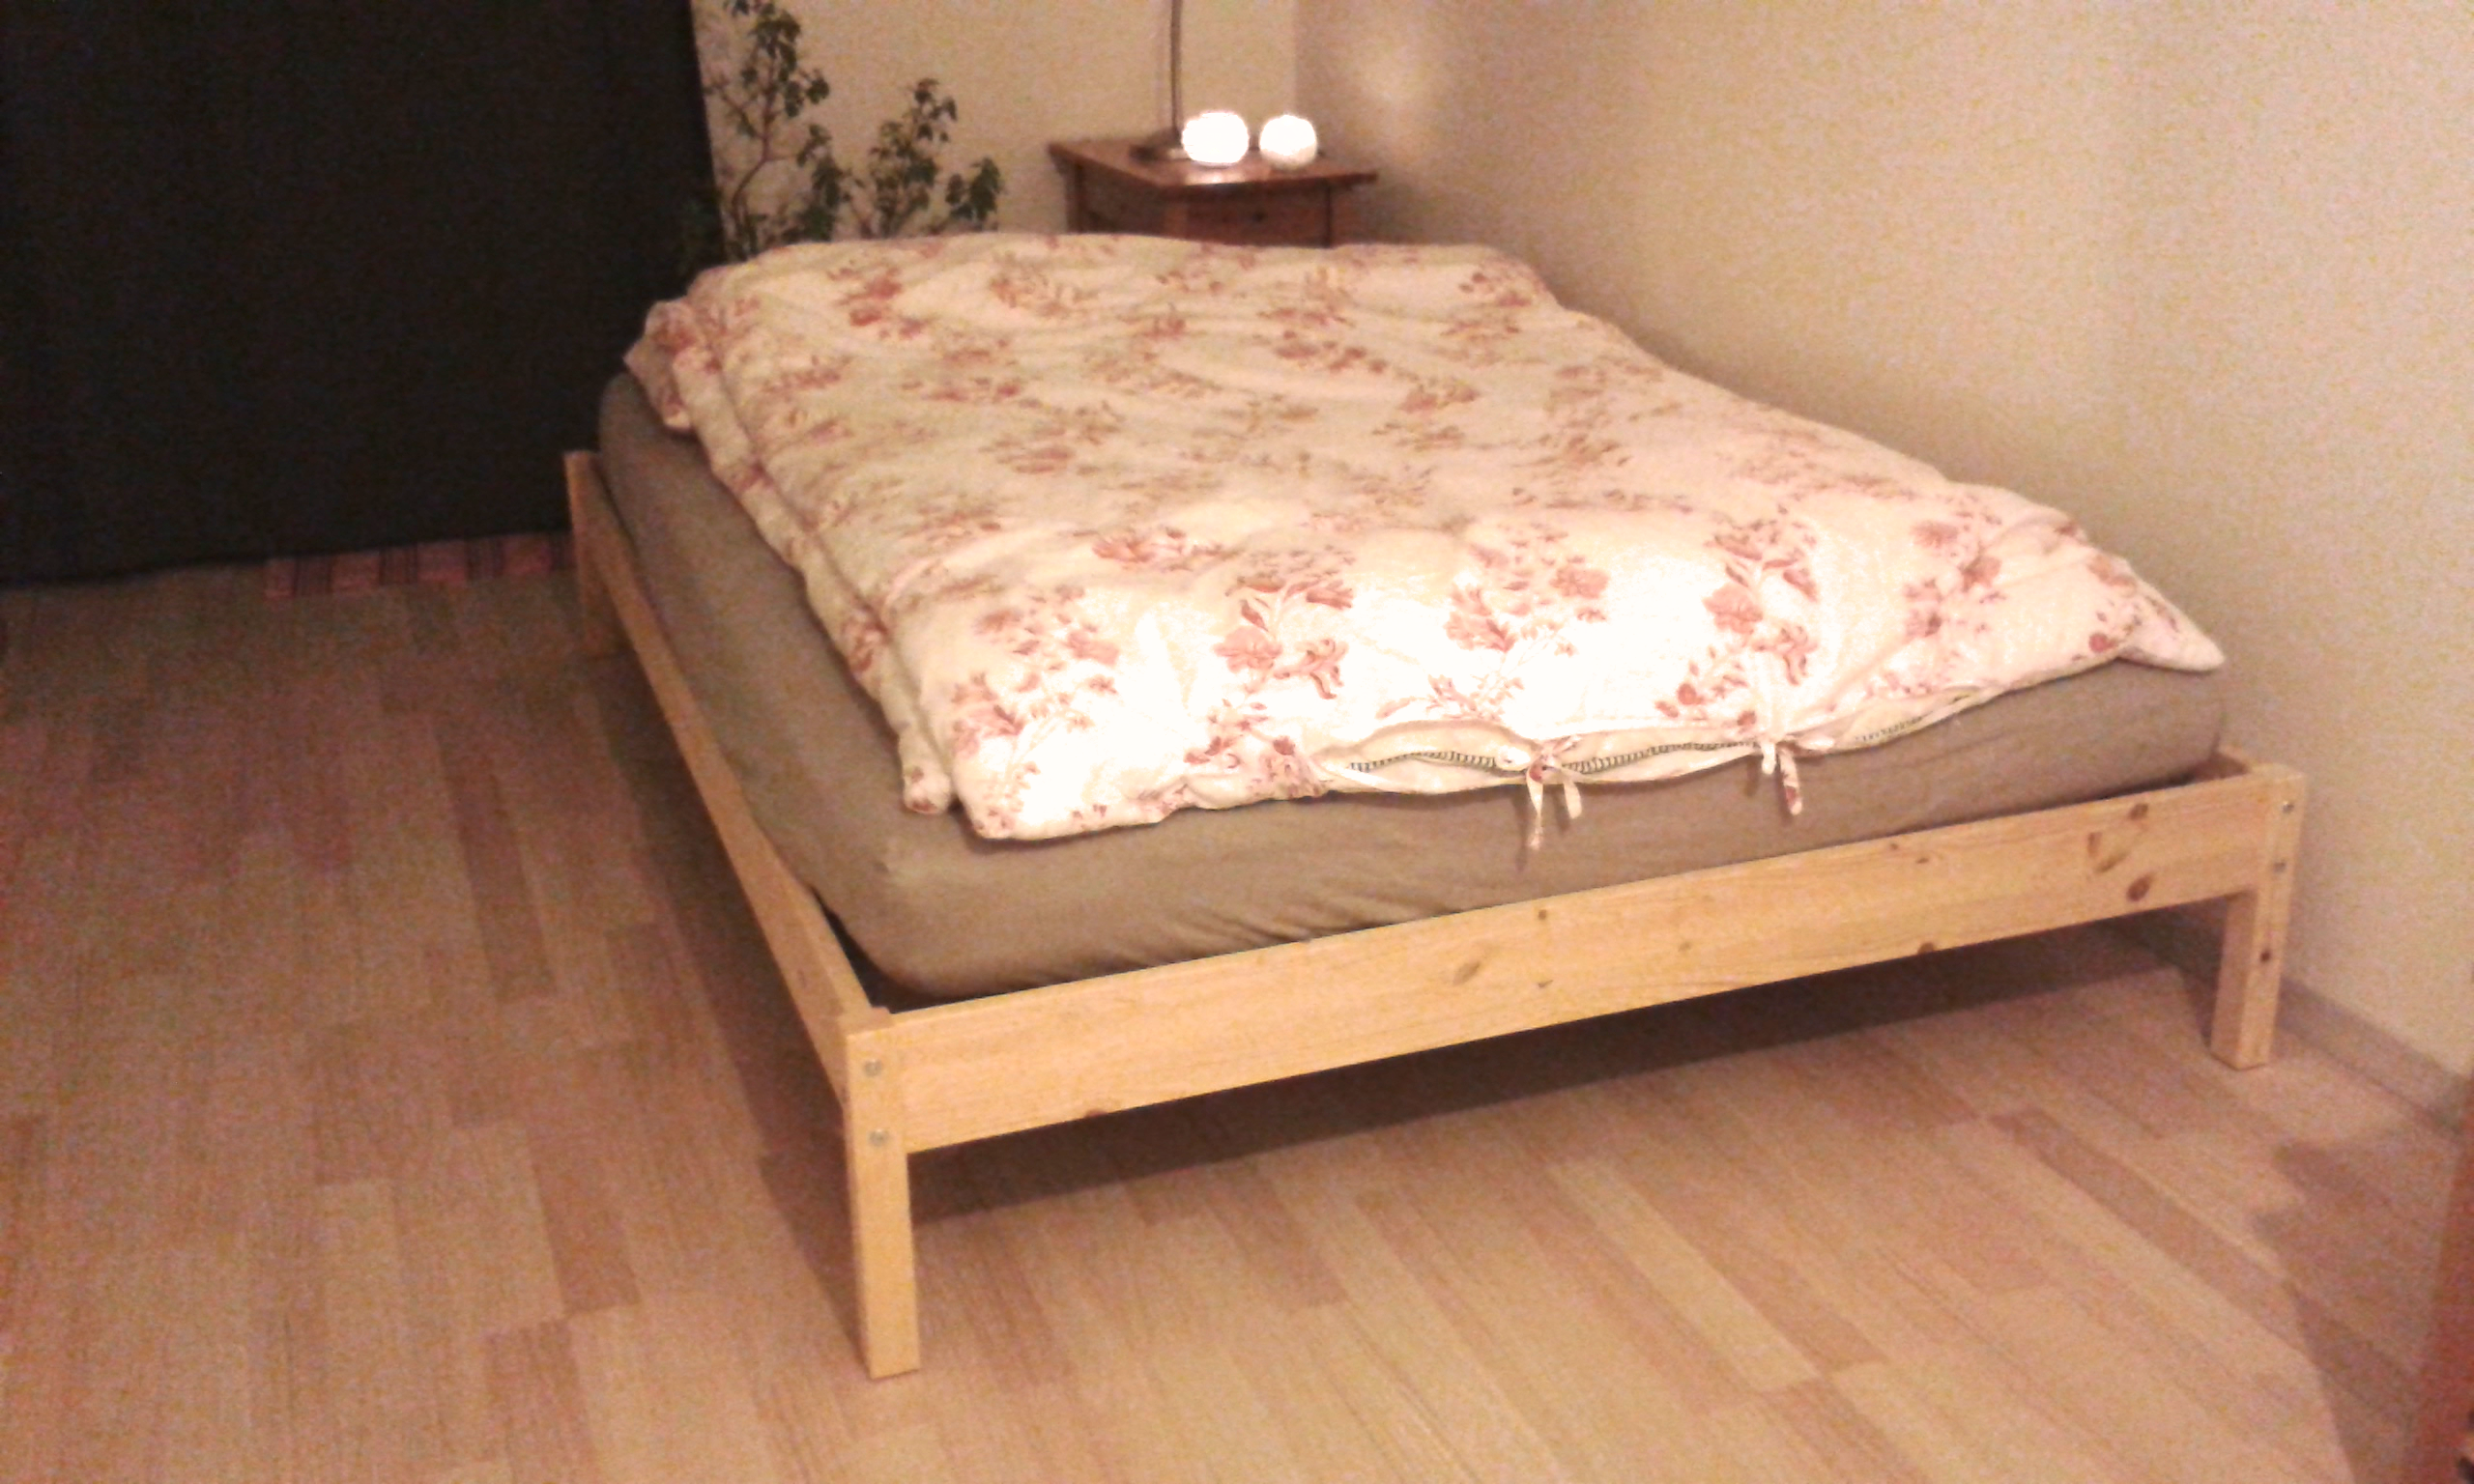 Hey Guys Today I M Here With The Ikea Tarva Bed Headboard Hack From My Boho Bedroom A Solid Wood Bed Frame G Headboard Hack Ikea Bed Hack Headboards For Beds